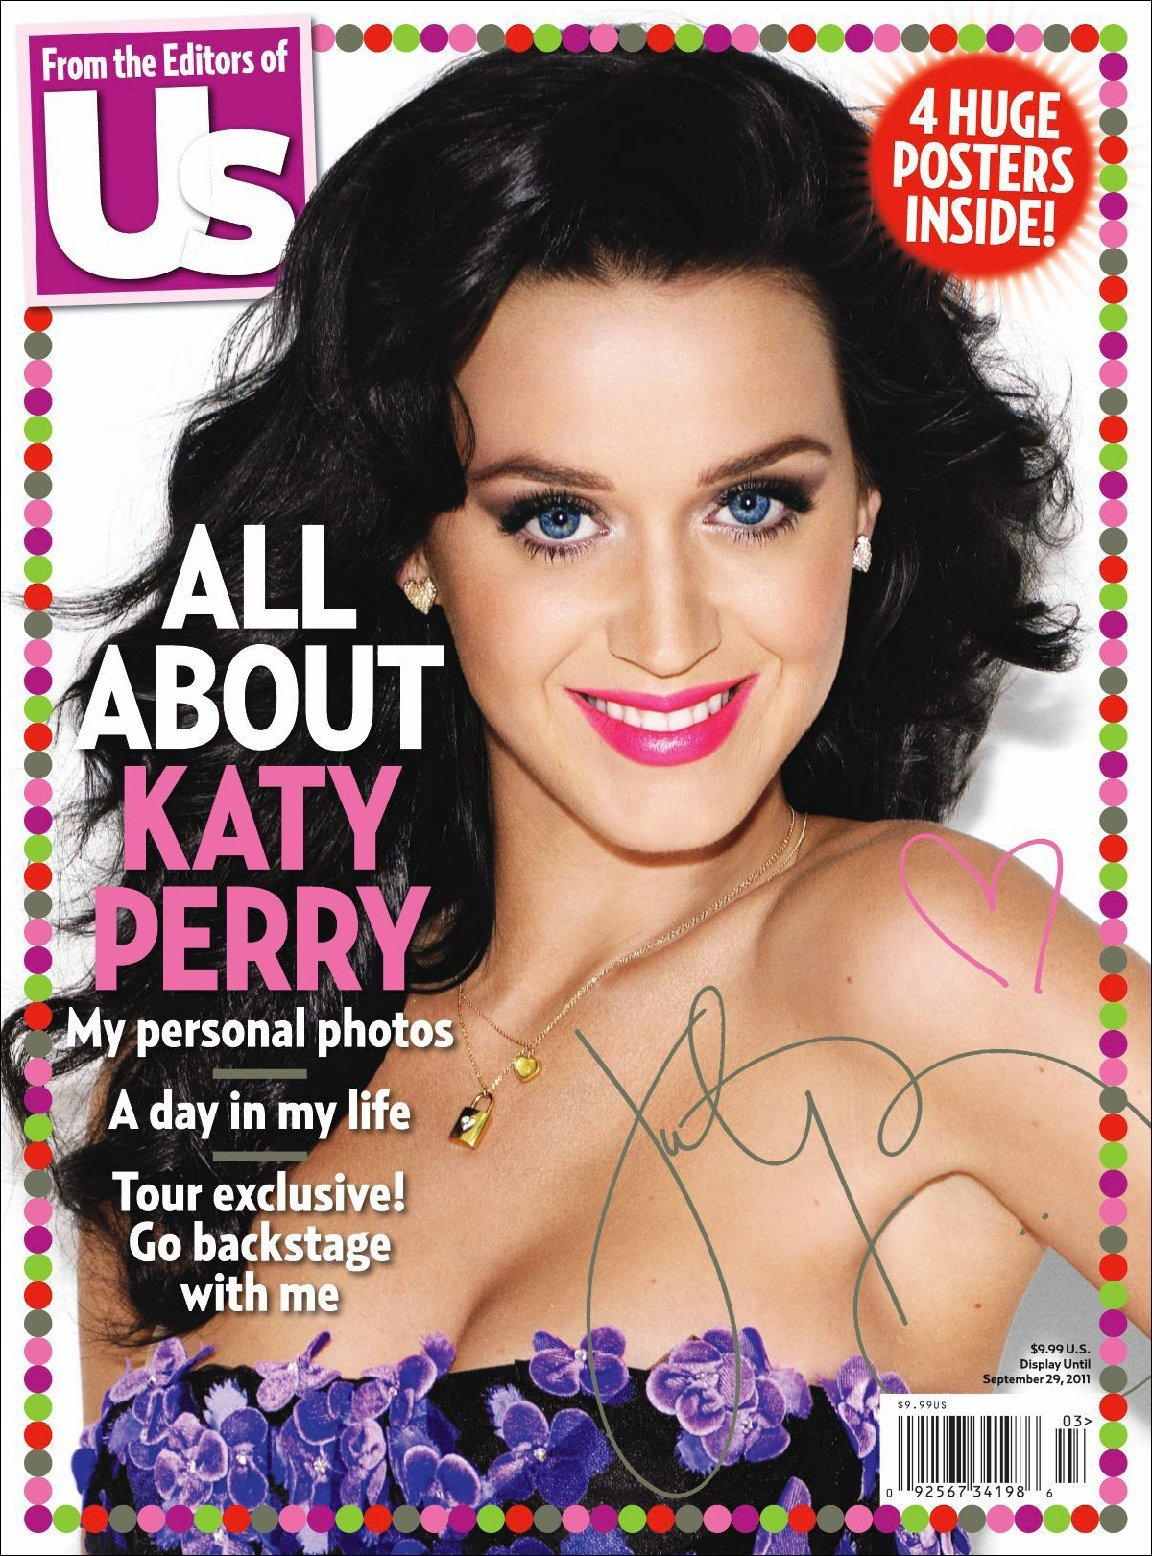 All About Katy Perry Digital